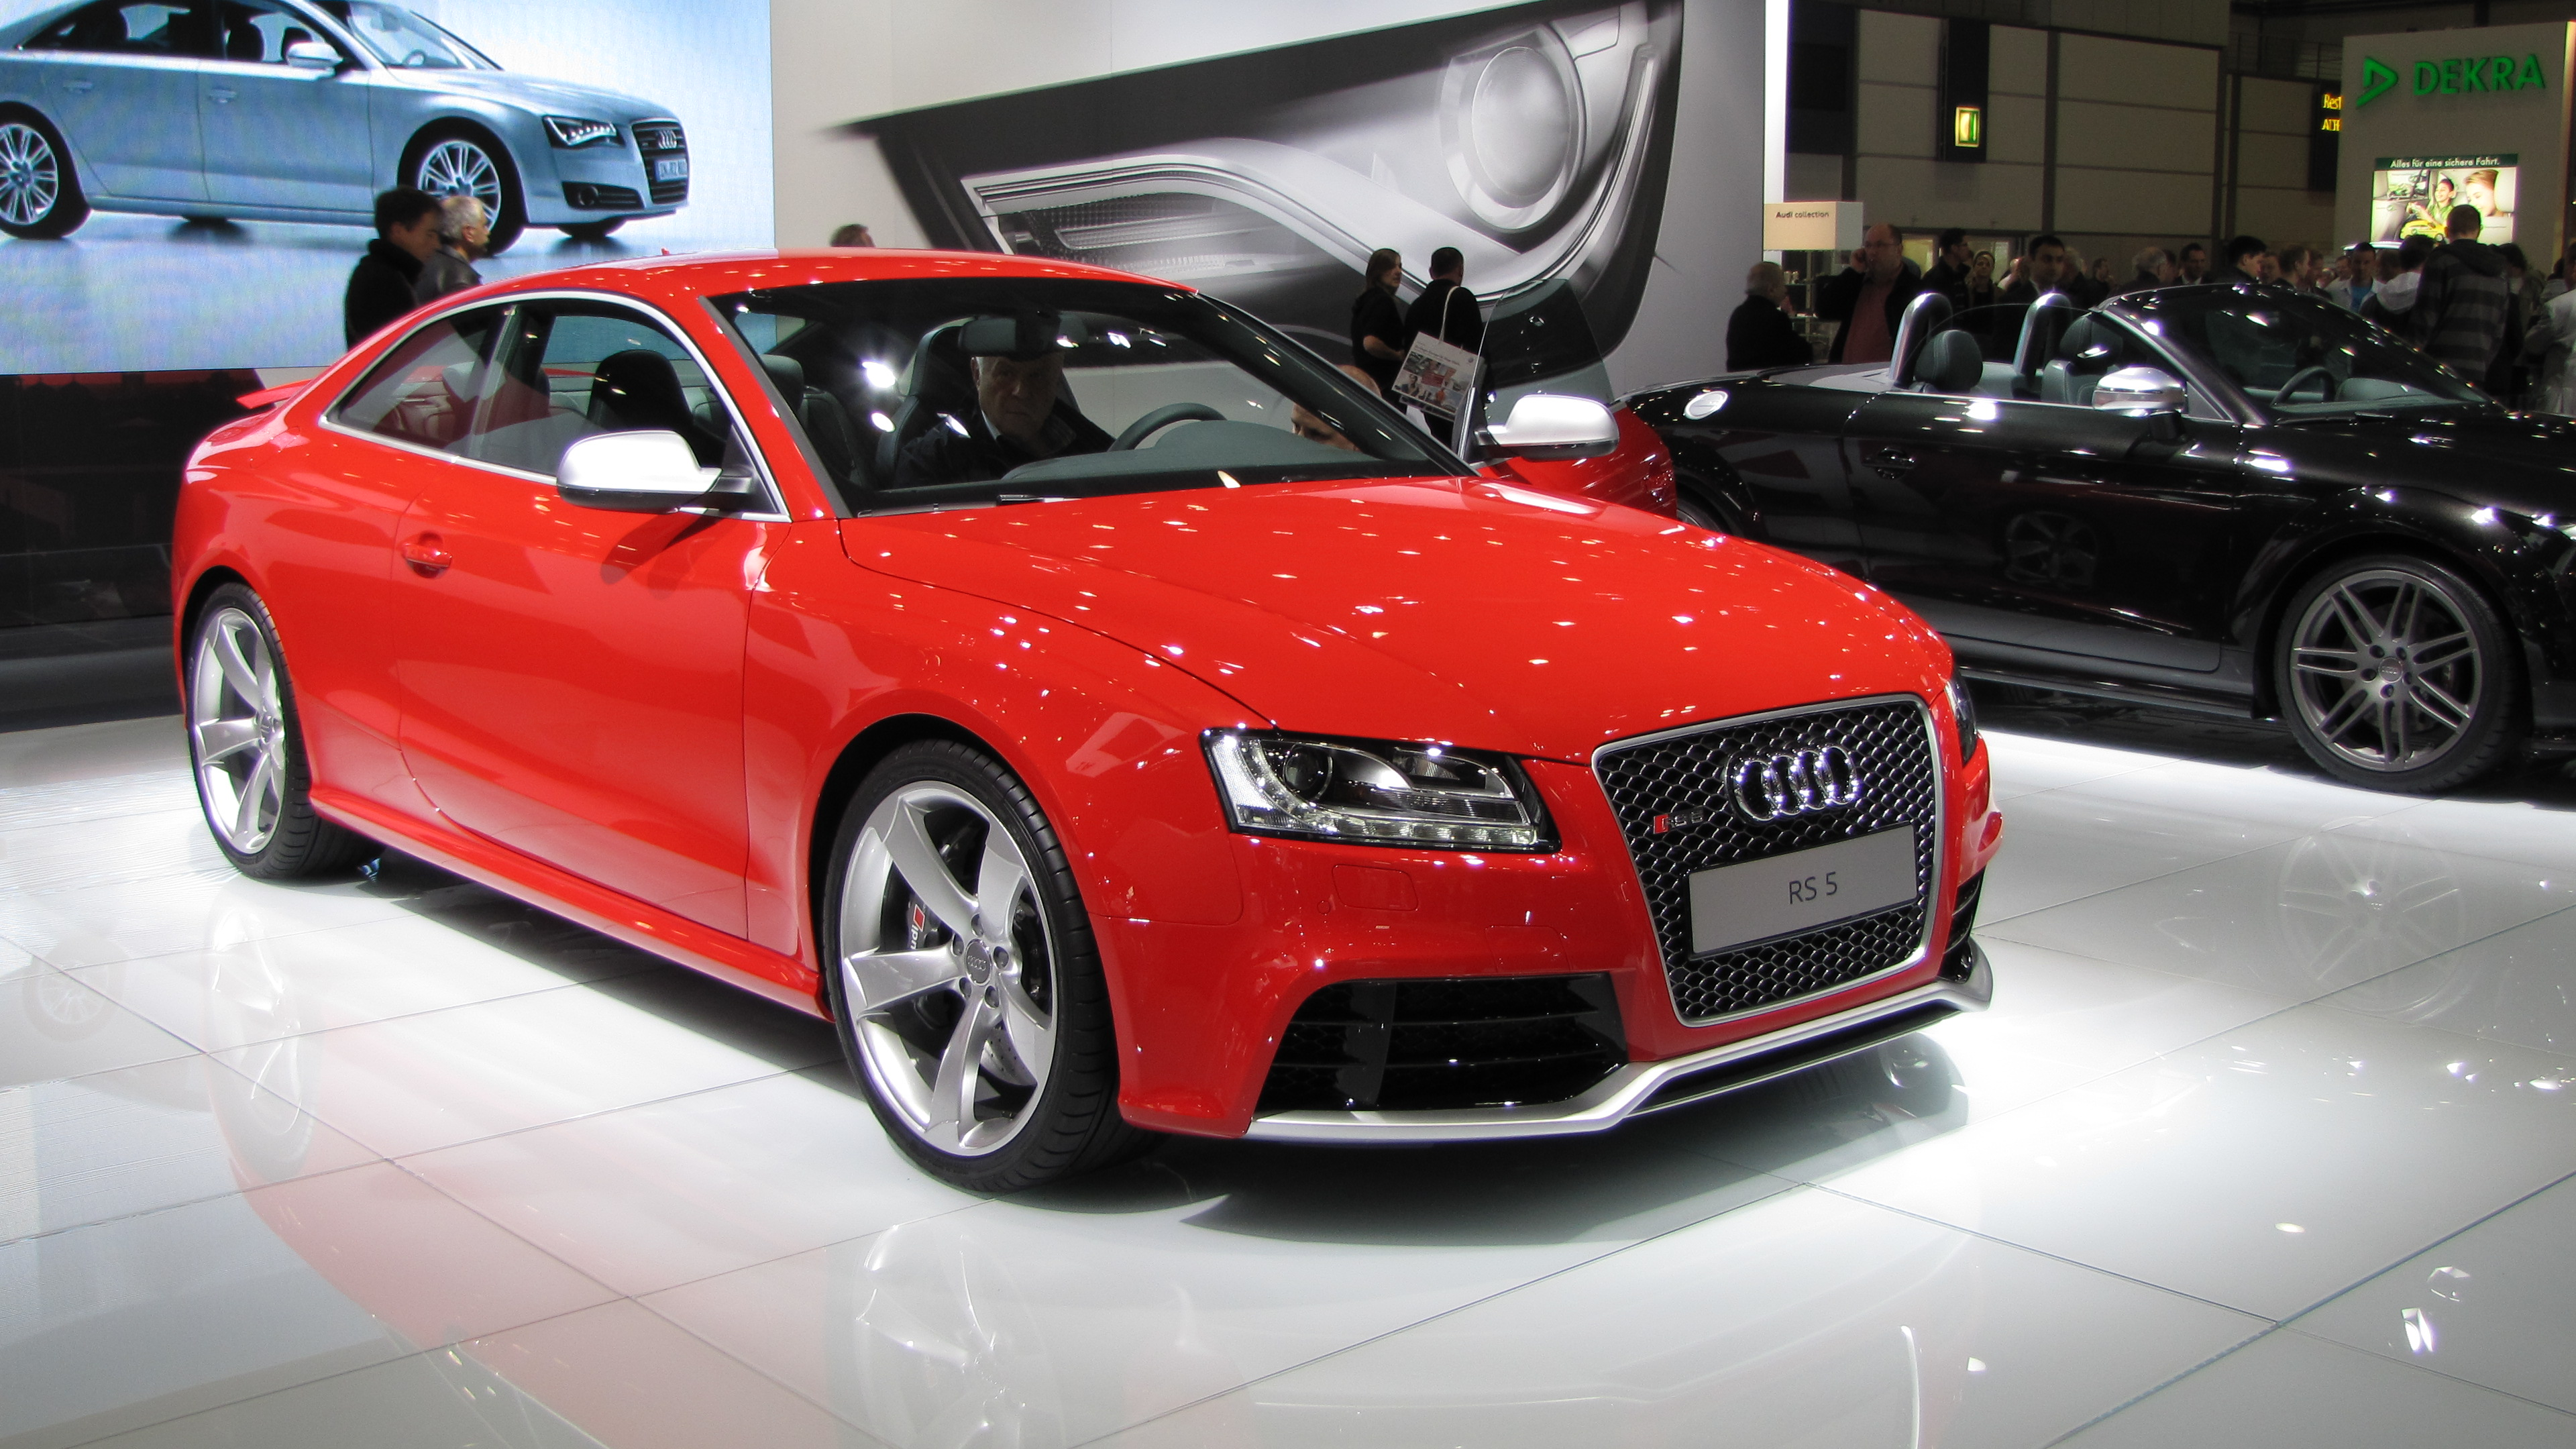 2012-06-19-Audi_RS5_front.jpg